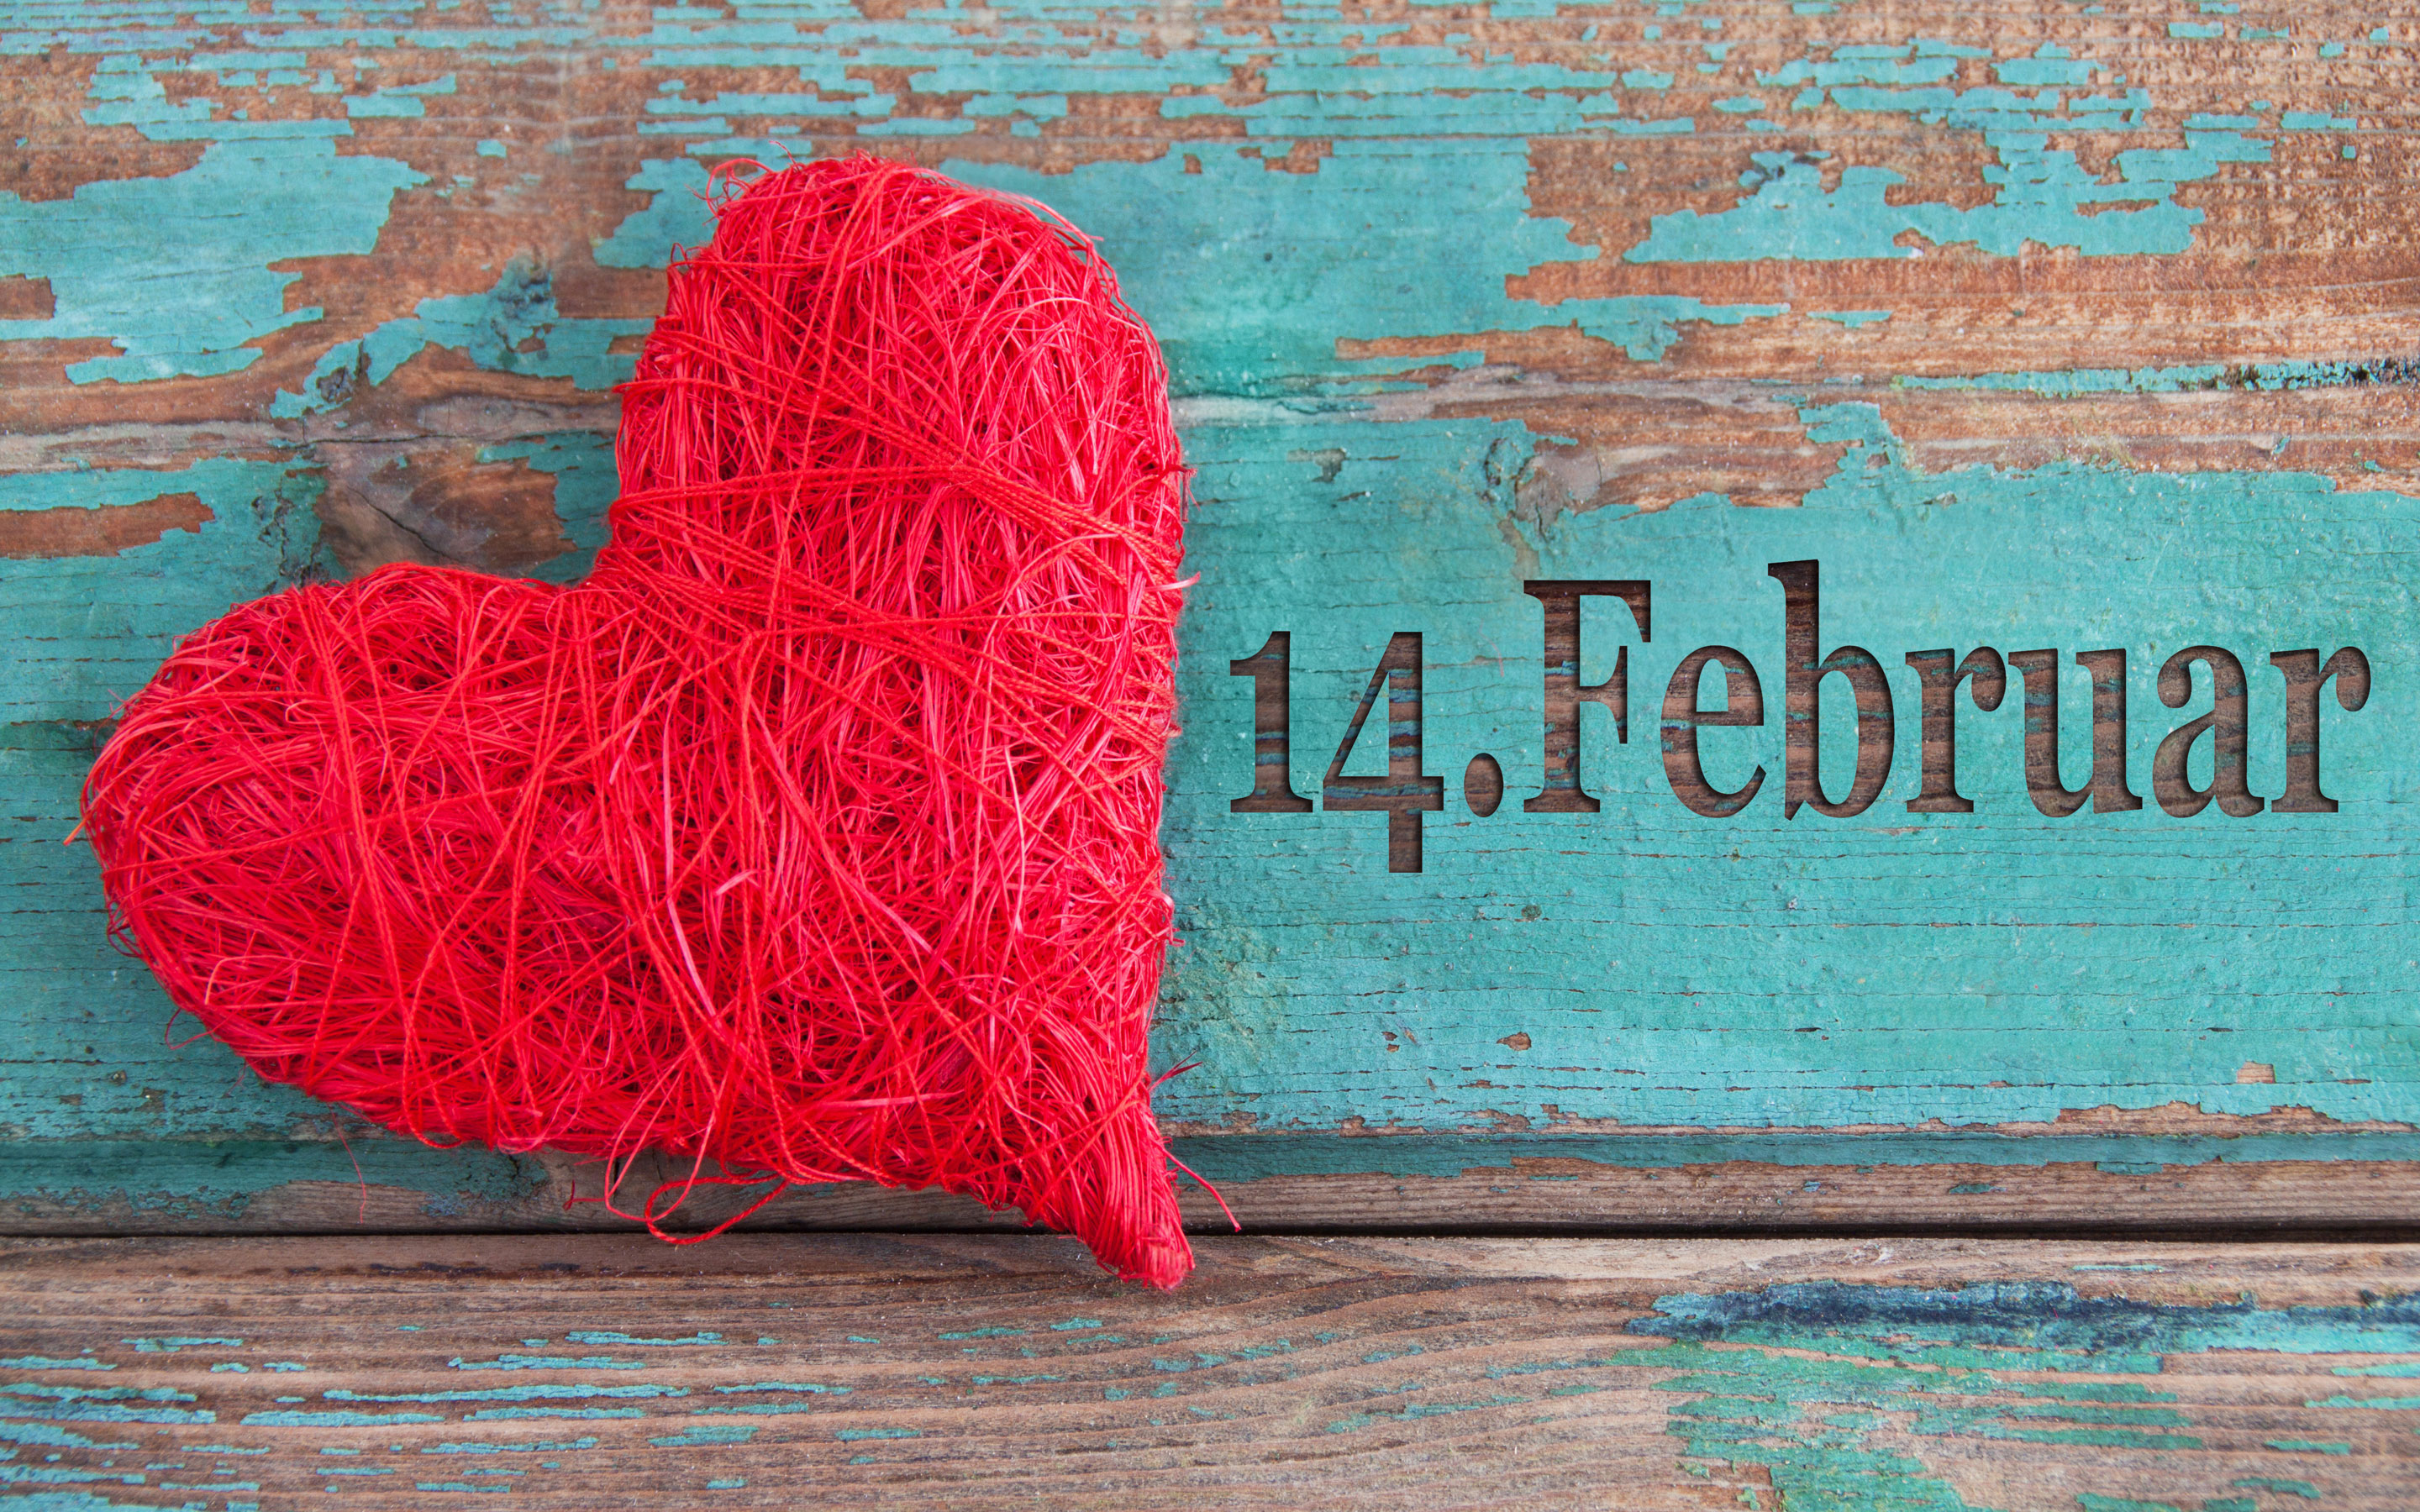 February 14 Valentines Day Heart HD Wallpaper 2880x1800